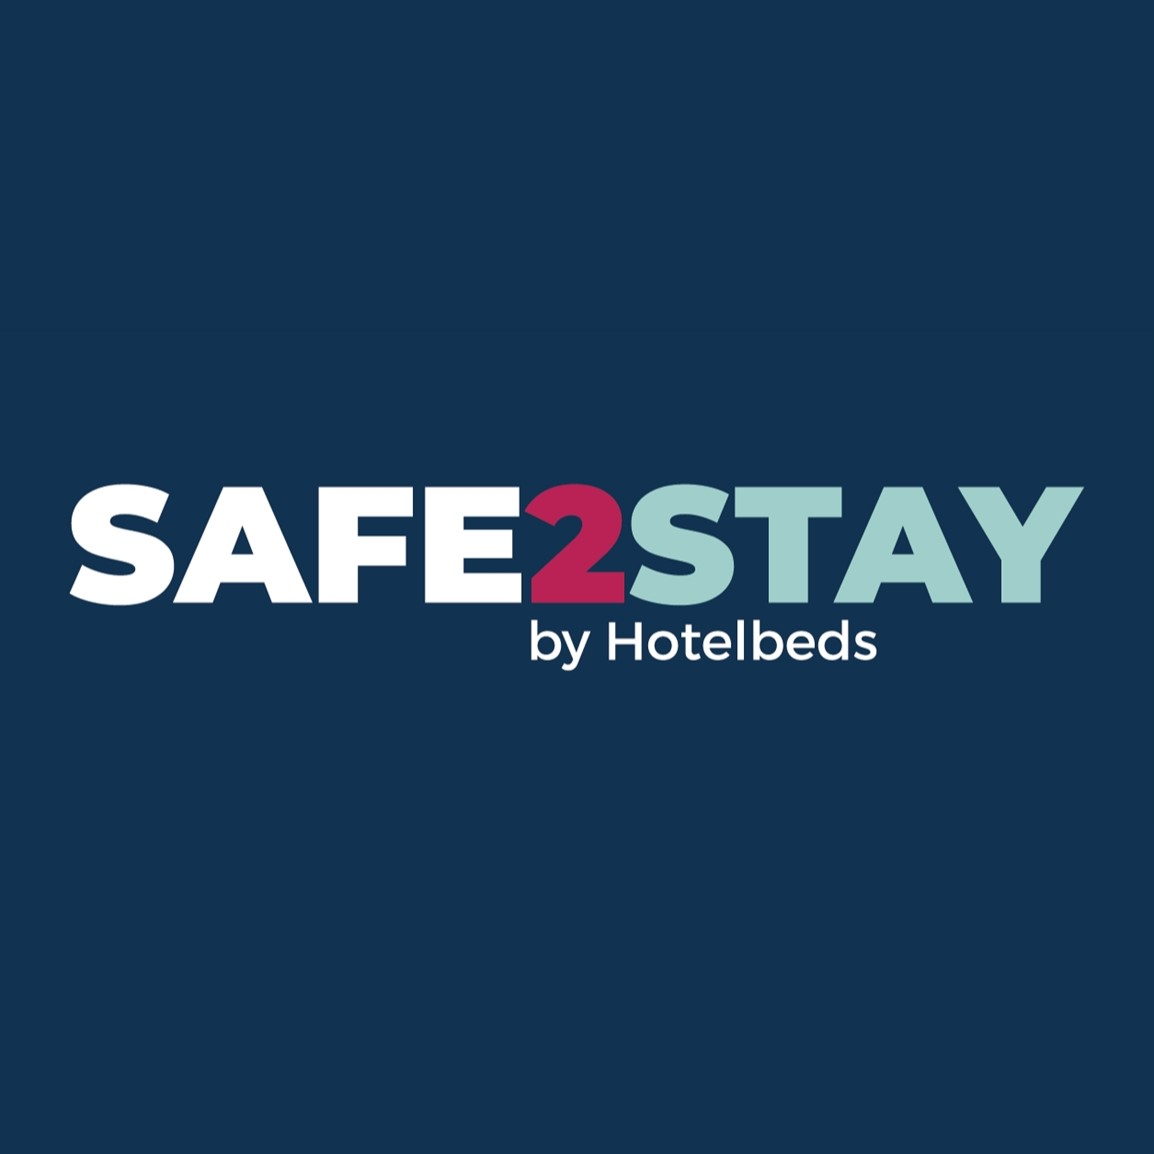 Safe2Stay by Hotelbeds